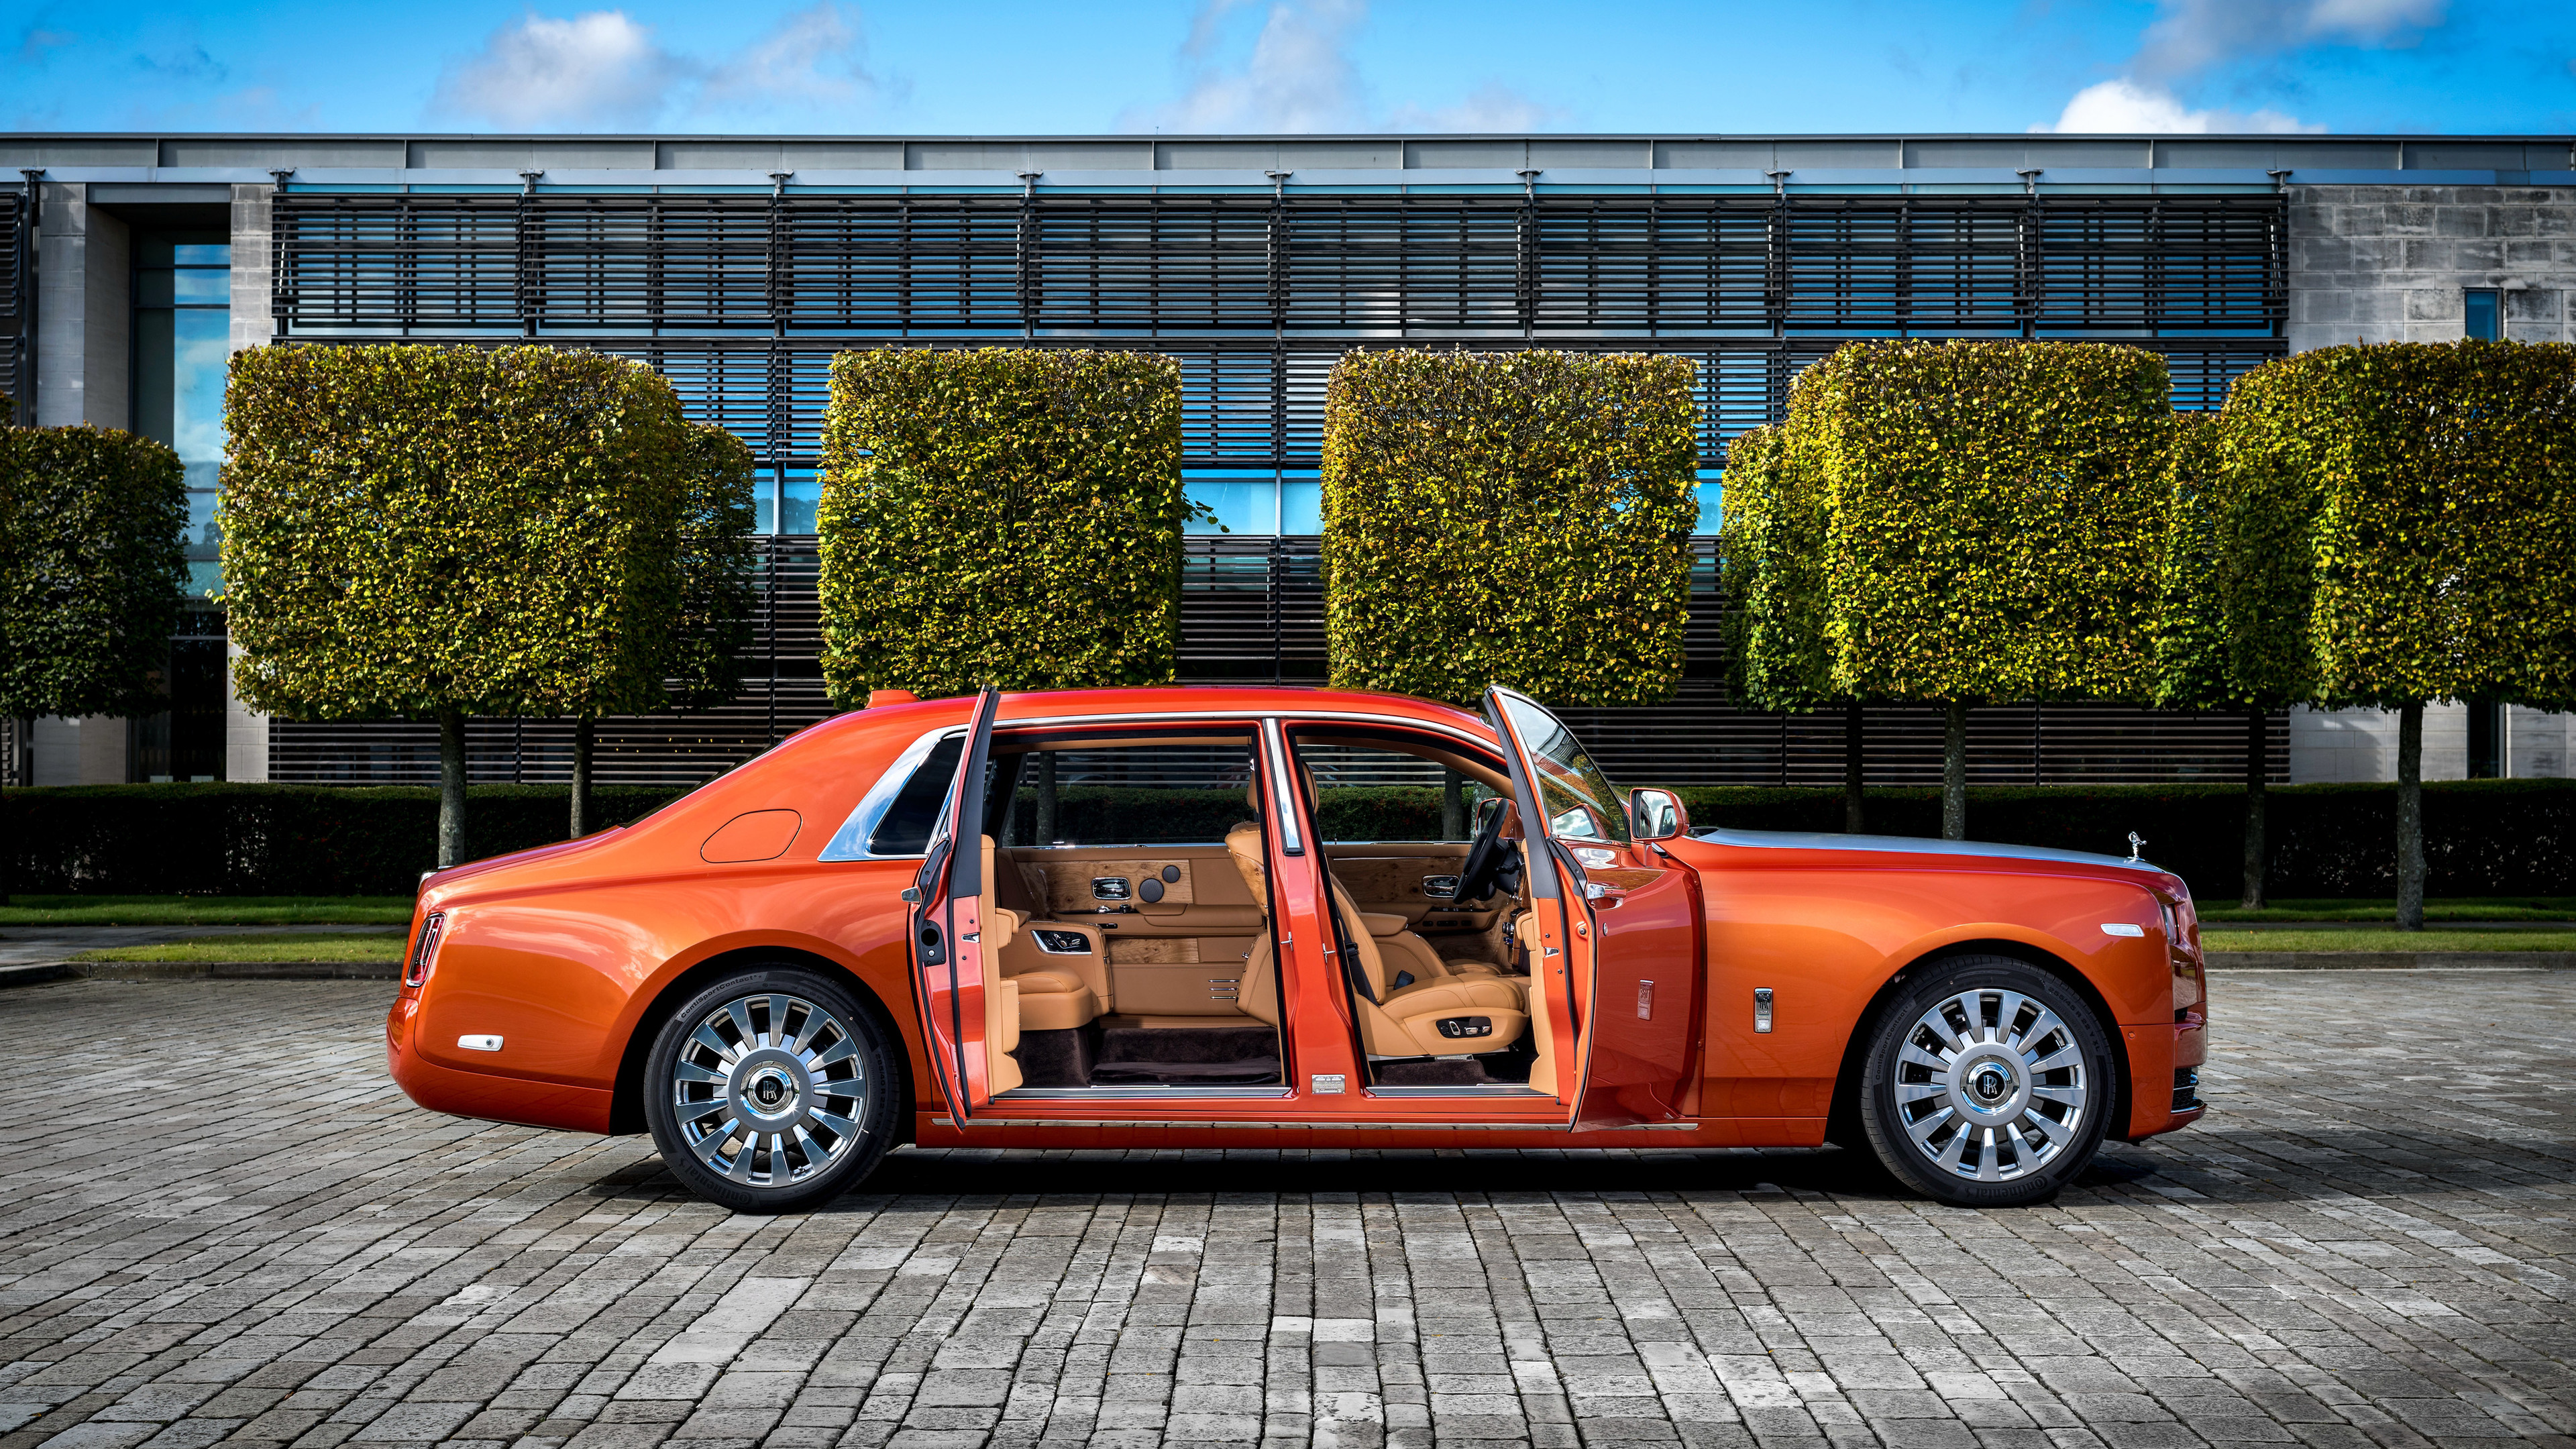 2017 rolls royce phantom ewb 1539107112 - 2017 Rolls Royce Phantom EWB - rolls royce wallpapers, rolls royce phantom wallpapers, rolls royce phantom ewb wallpapers, hd-wallpapers, cars wallpapers, 4k-wallpapers, 2017 cars wallpapers